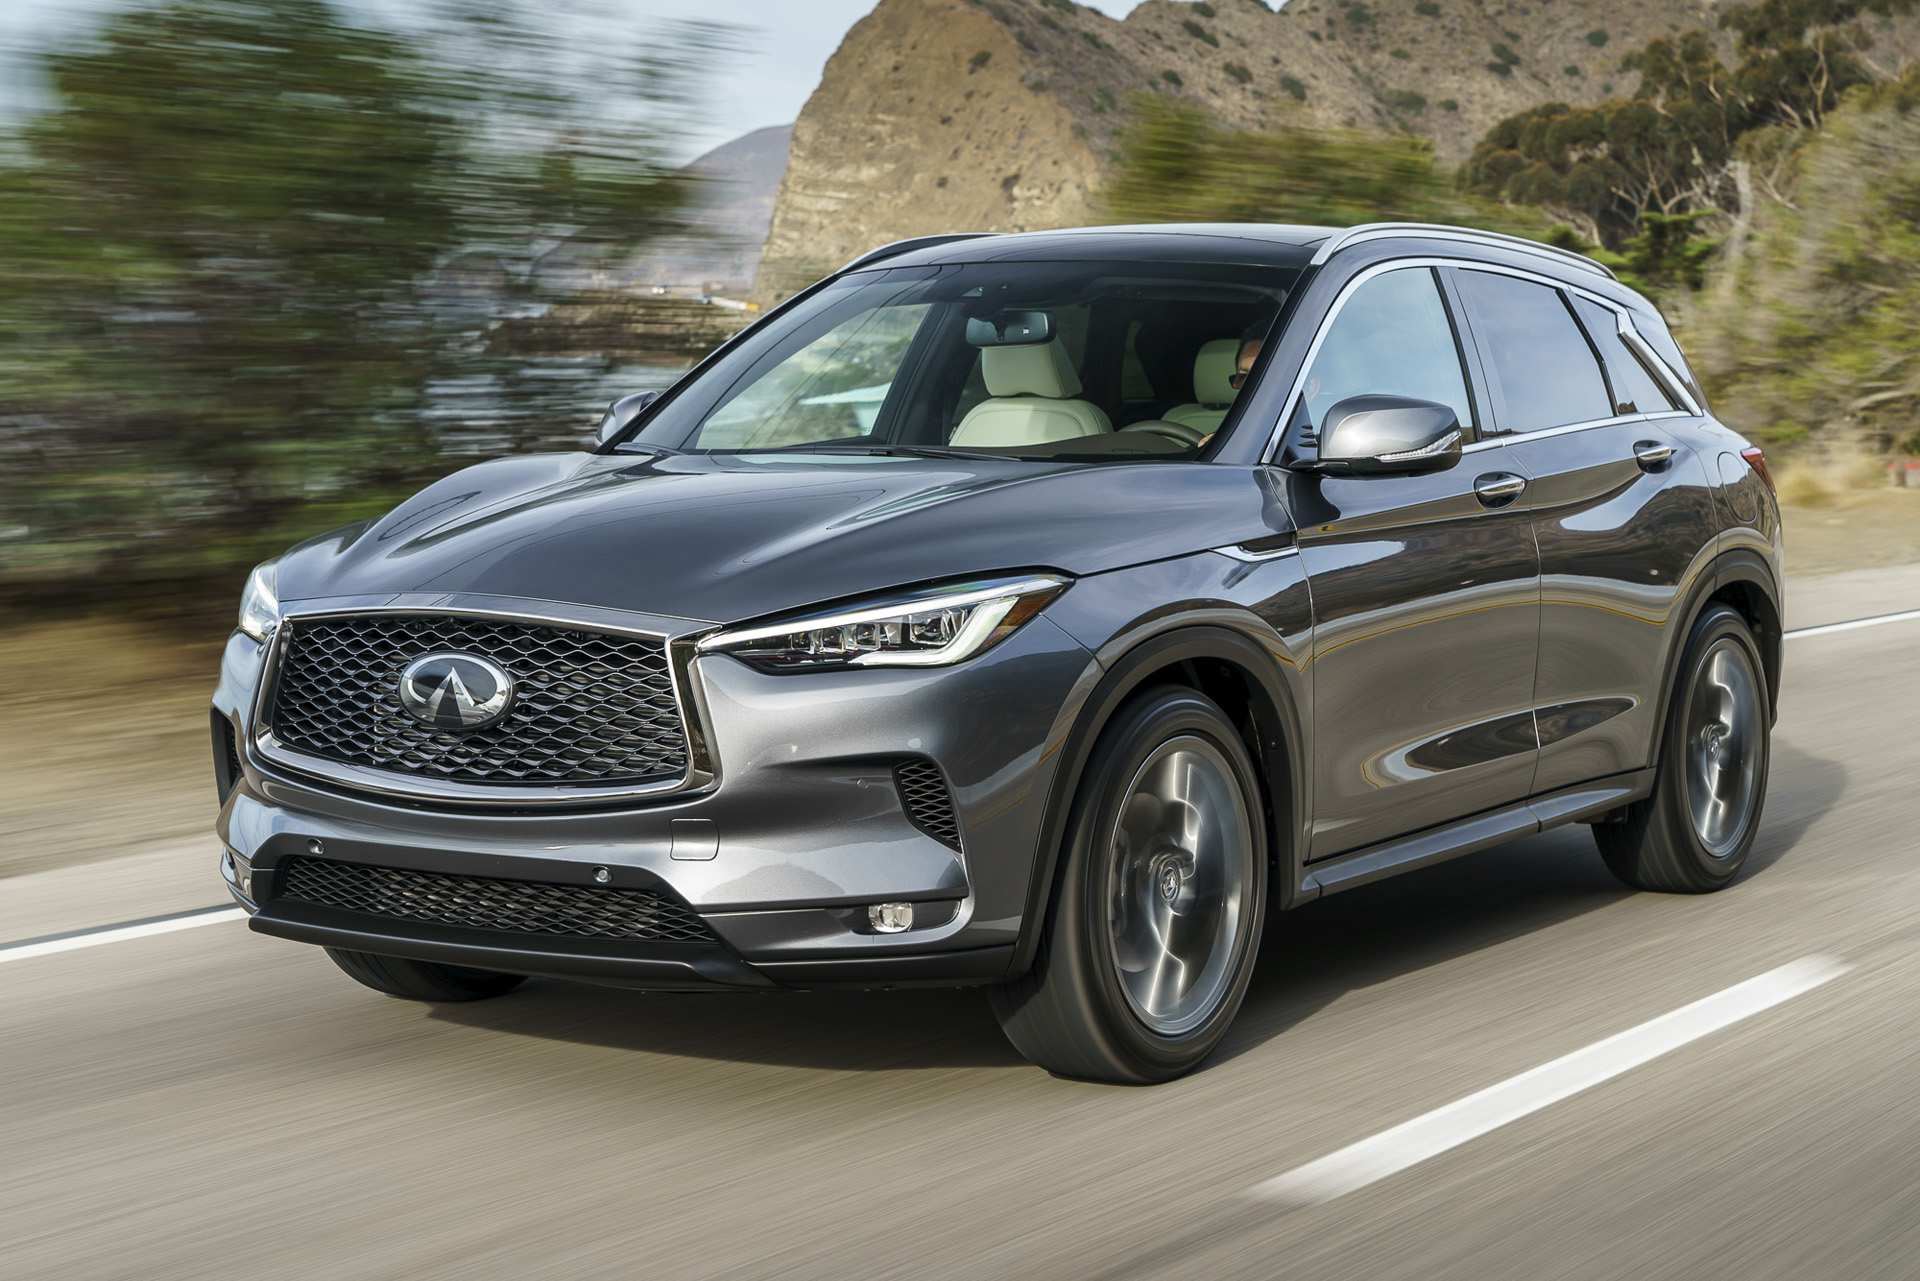 84 The Best 2019 Infiniti Lineup Exterior And Interior